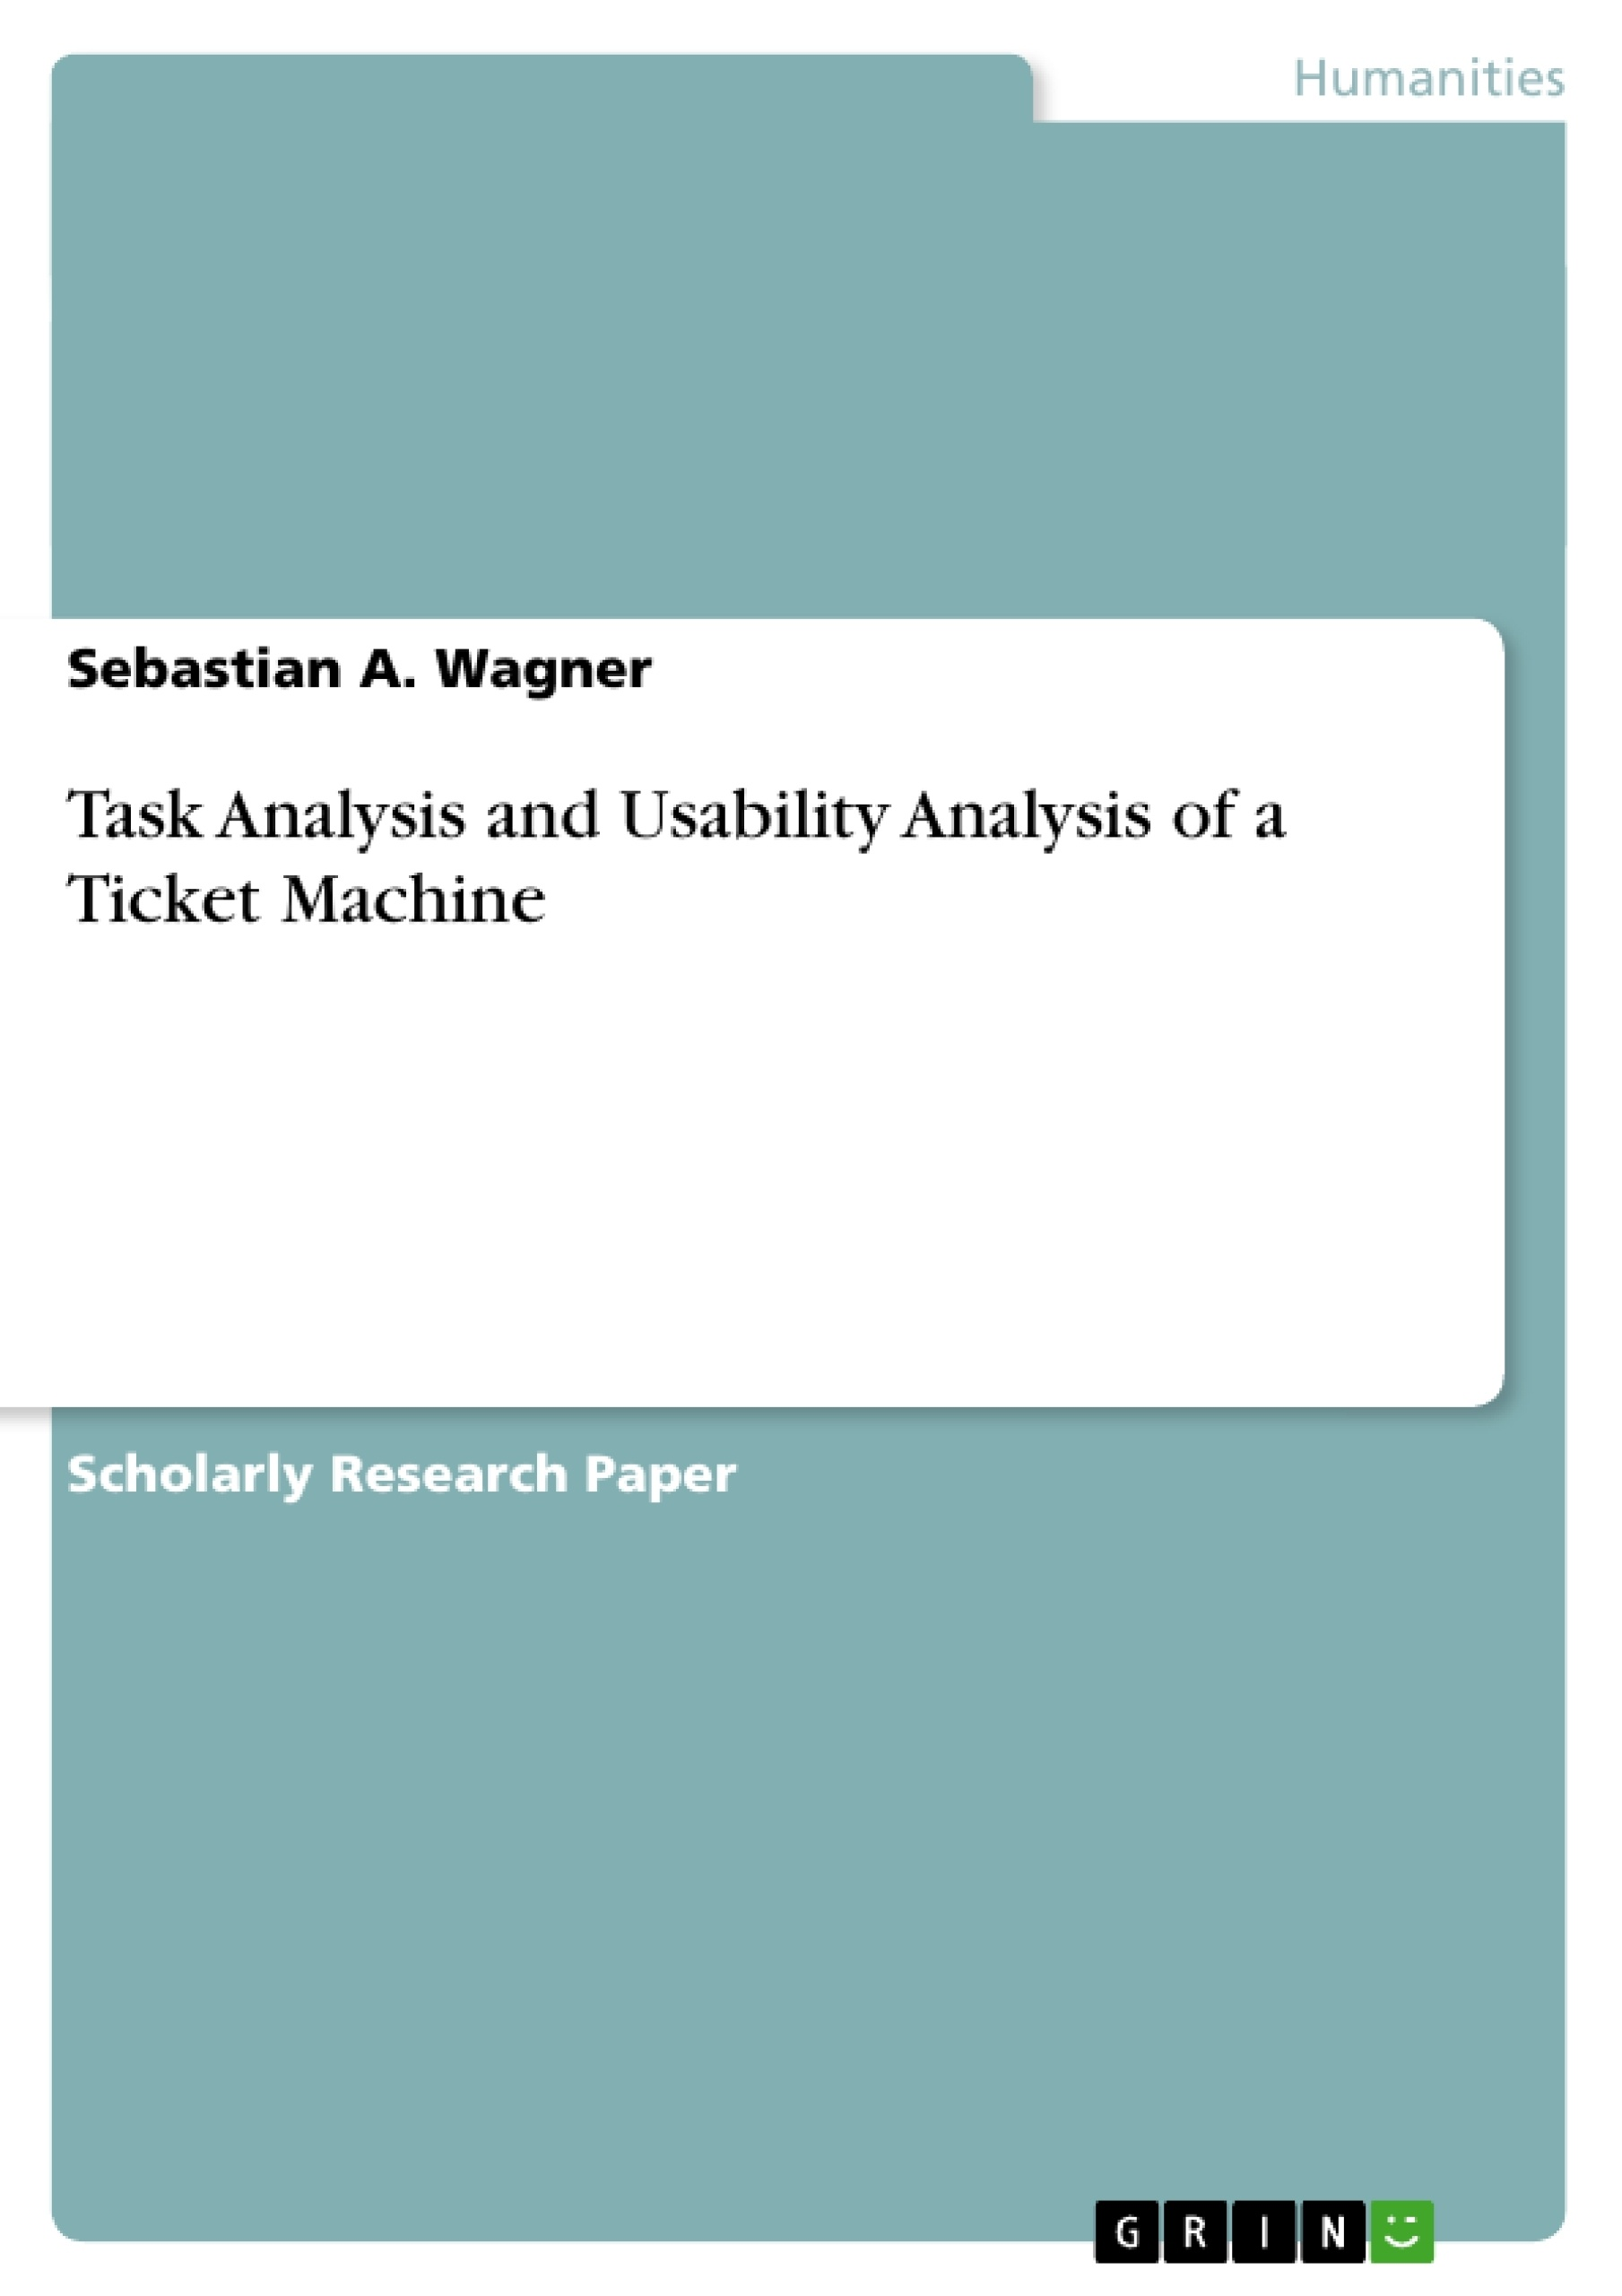 GRIN - Task Analysis and Usability Analysis of a Ticket Machine